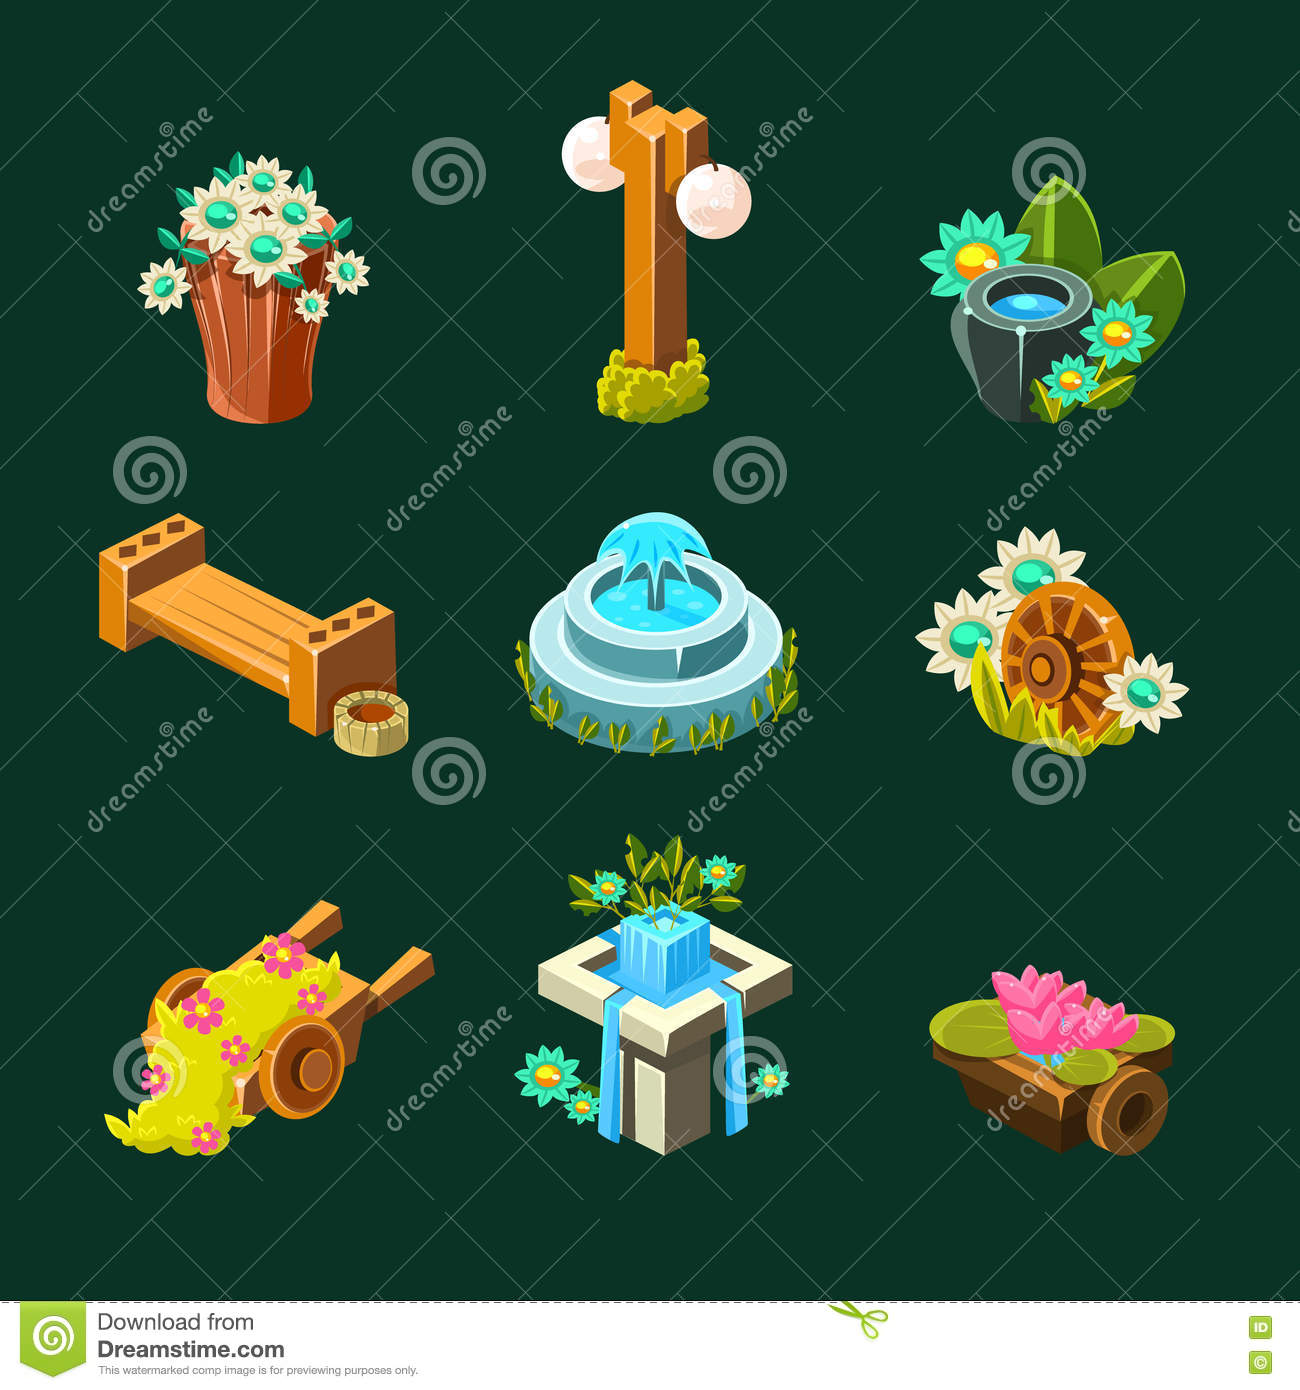 Garden Design Games Collection Captivating Video Game Garden Decoration Collection Of Elements Stock Vector . Design Decoration